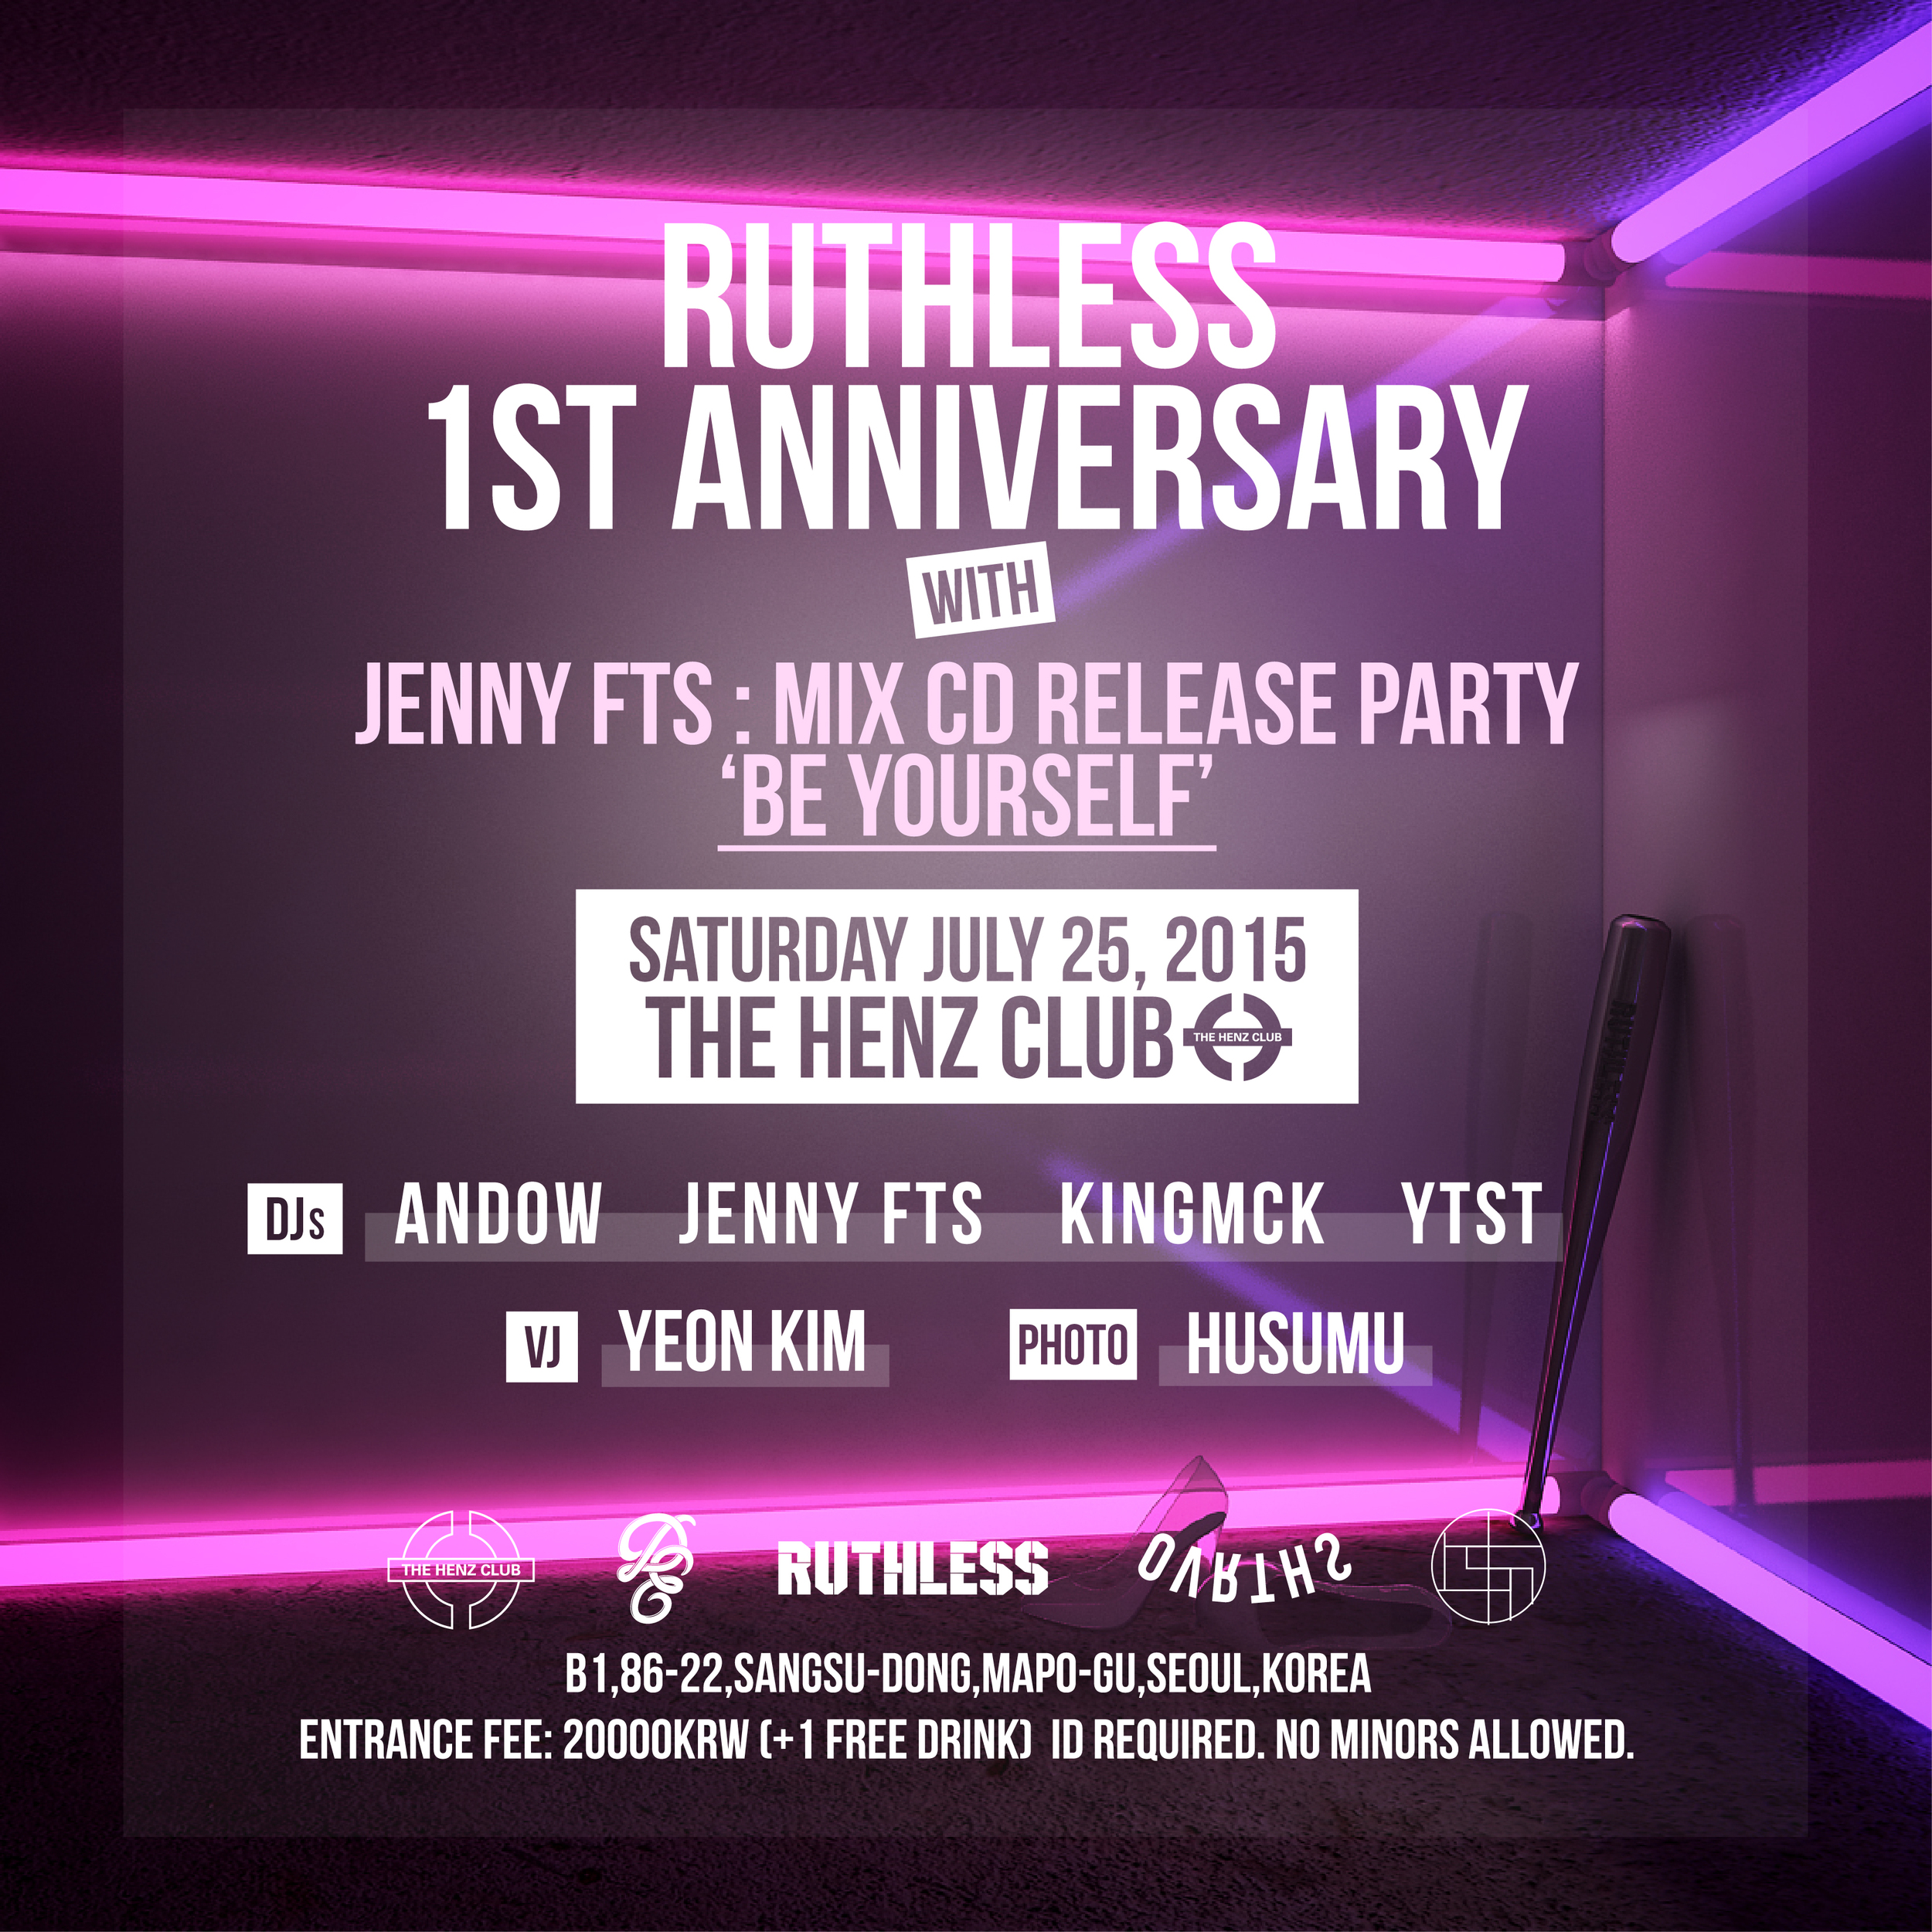 RUTHLESS_1ST_ANNIVERSARY_POSTER